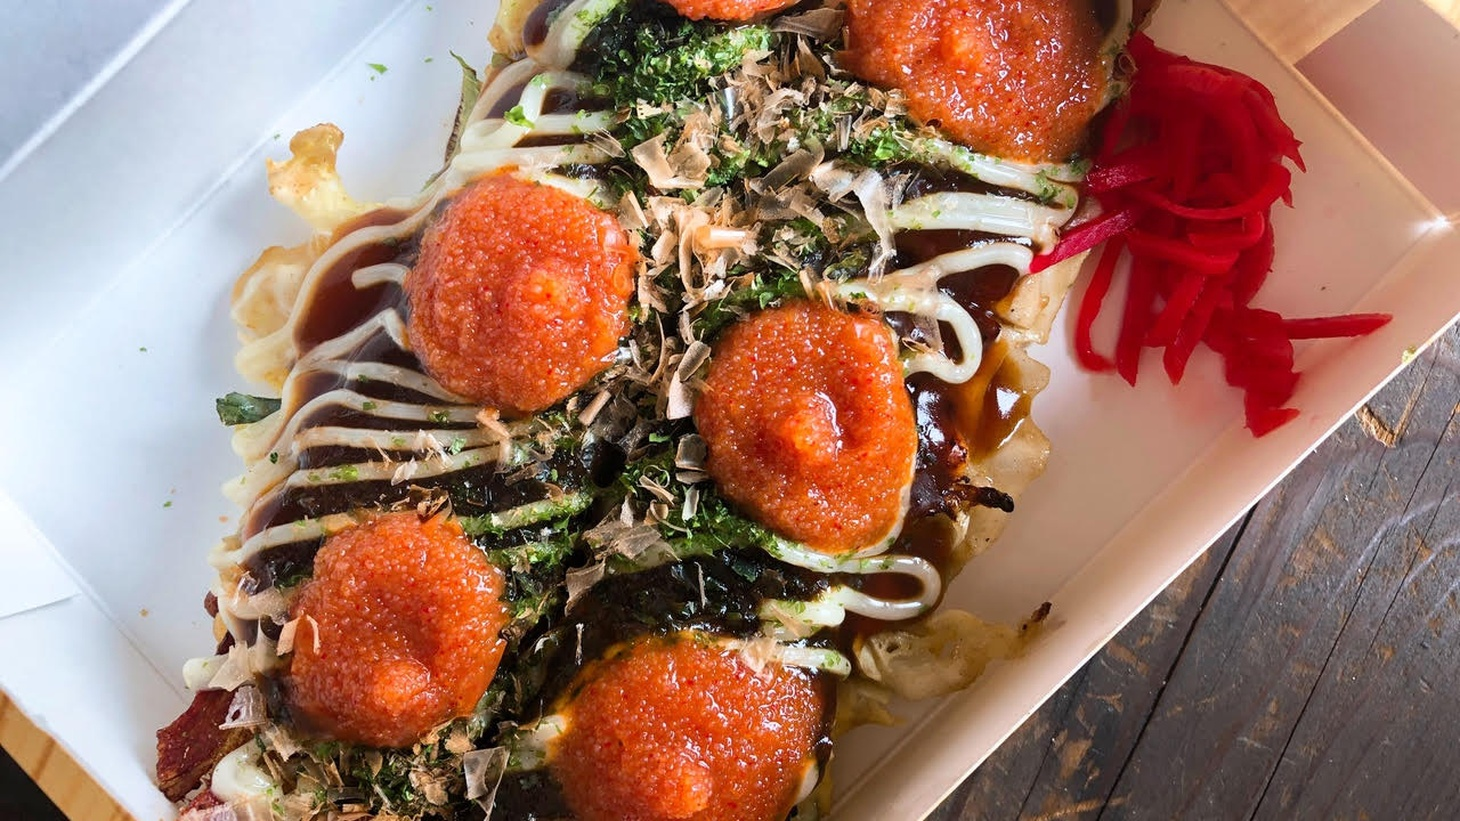 """""""Picking up food takes on the air of a precious chance occurrence like whale watching,"""" says restaurant critic Soleil Ho. Her pandemic takeout in San Francisco includes okonomiyaki from Okkon."""